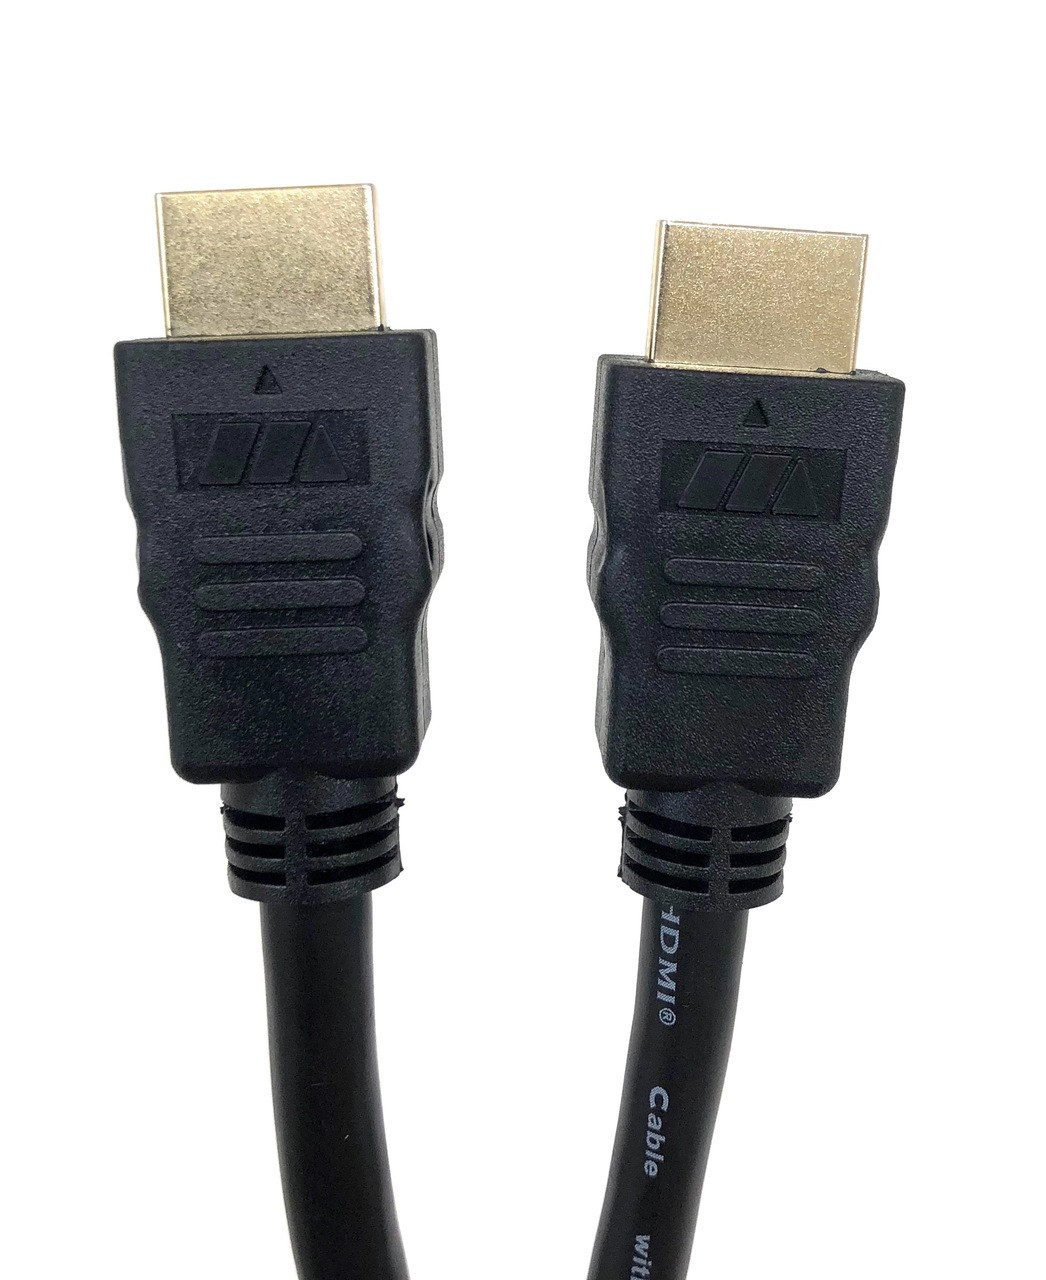 6 Feet Premium 4K High Speed HDMI With Ethernet 28AWG Cable